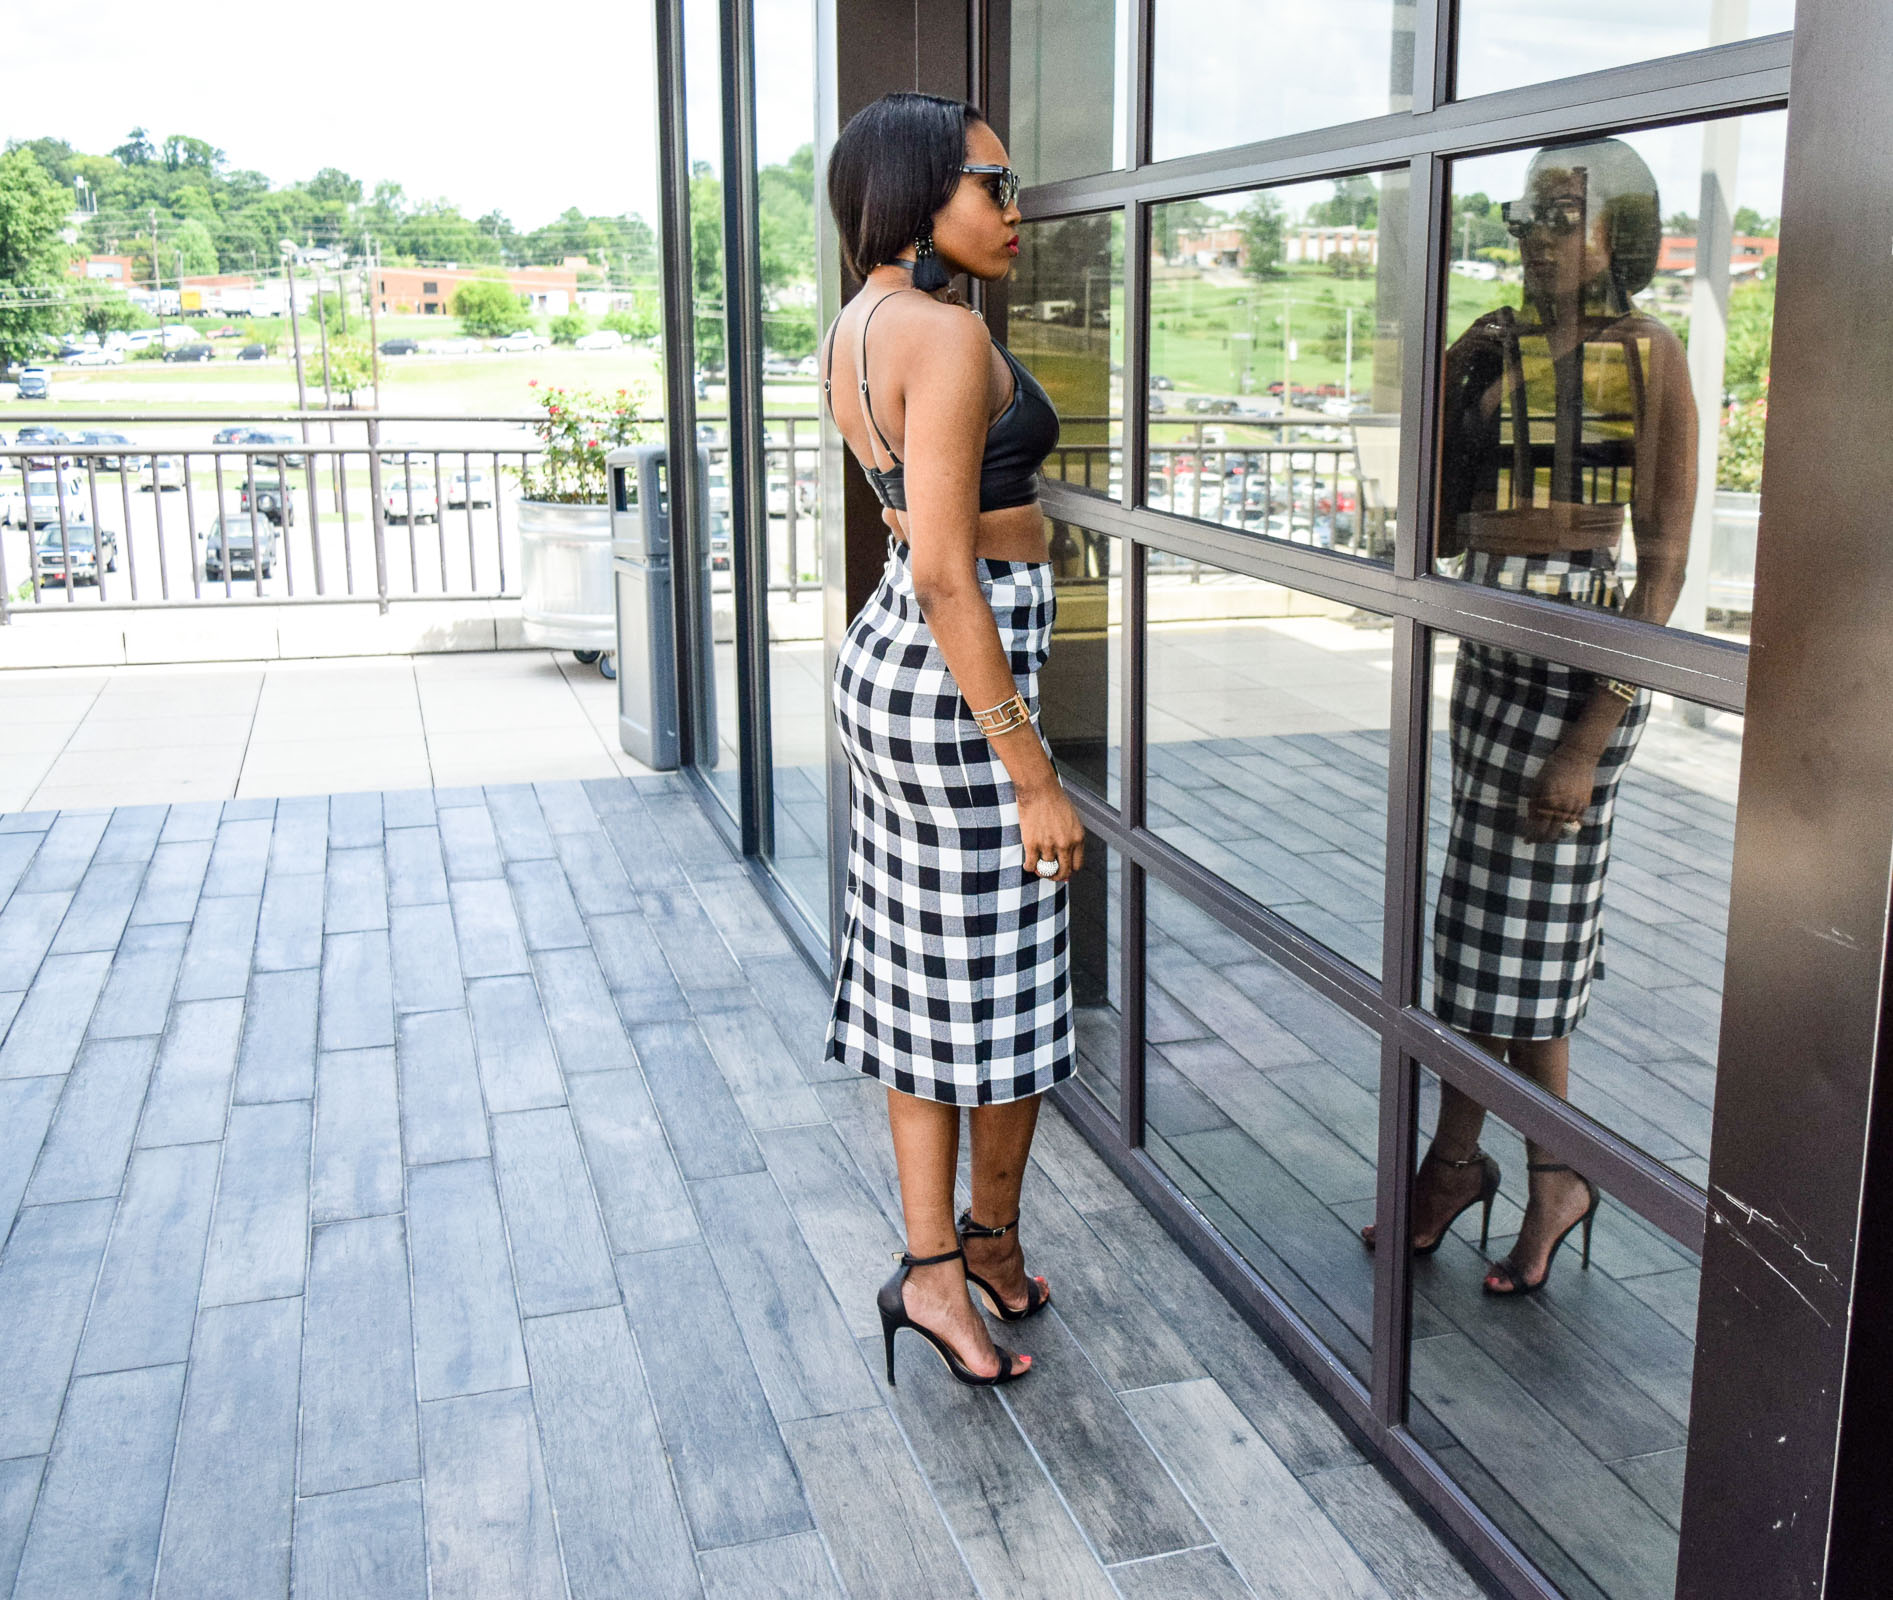 Style-Files-WhoWhatWear-Target-collection-black-white-gingham-pencil-skirt-forever-21-black-leather-bralette-top-justfab-catherina-black-ankle-strap-sandals-Target-Mossimo-vest-who-to-wear-gingham-OohLaLaBlog-9